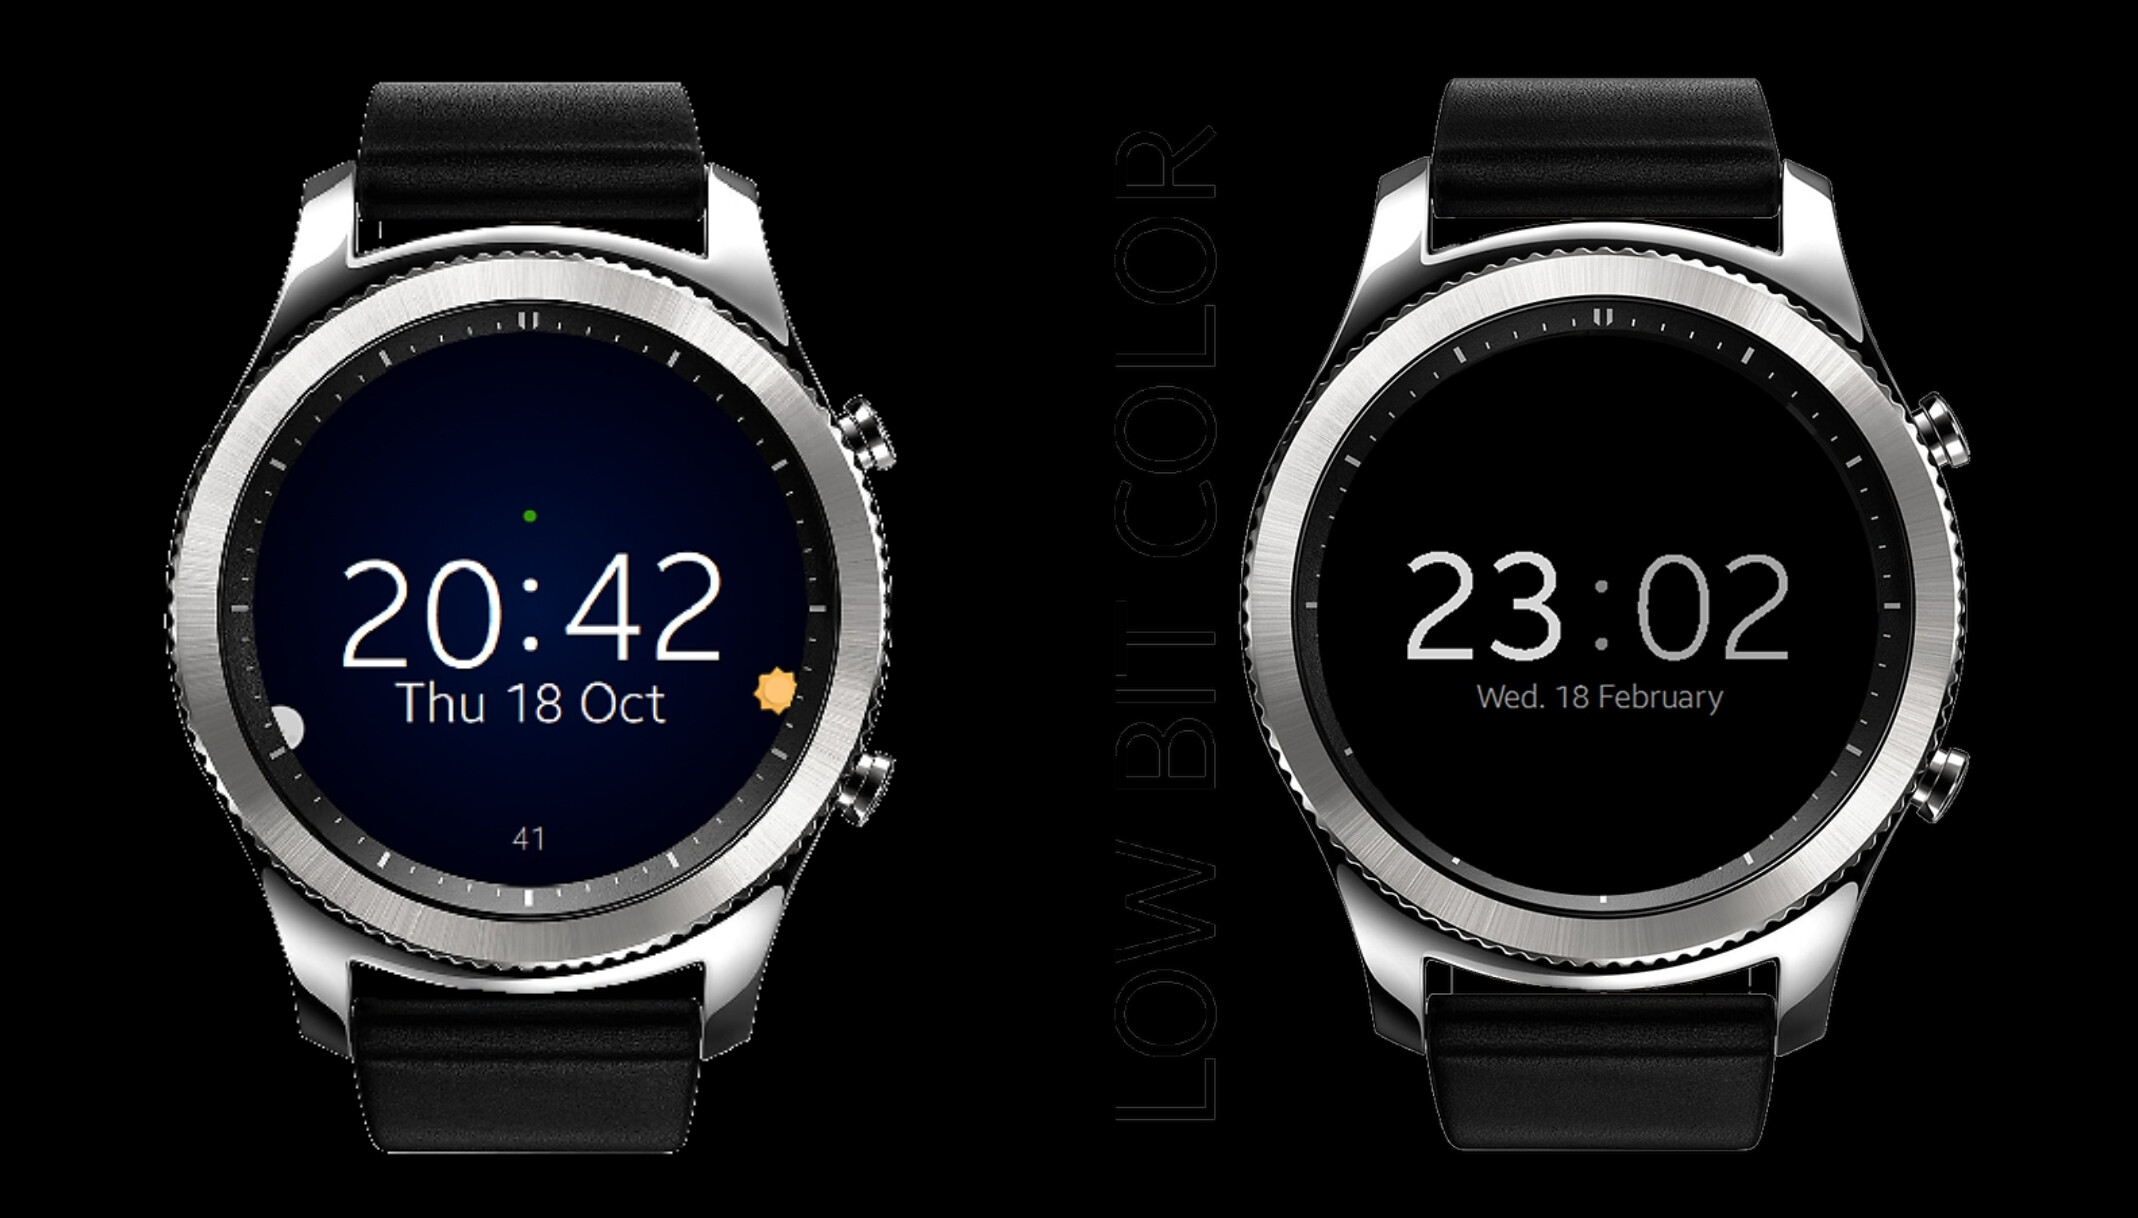 Check out these watchfaces for your Gear Sport, Gear S3, or